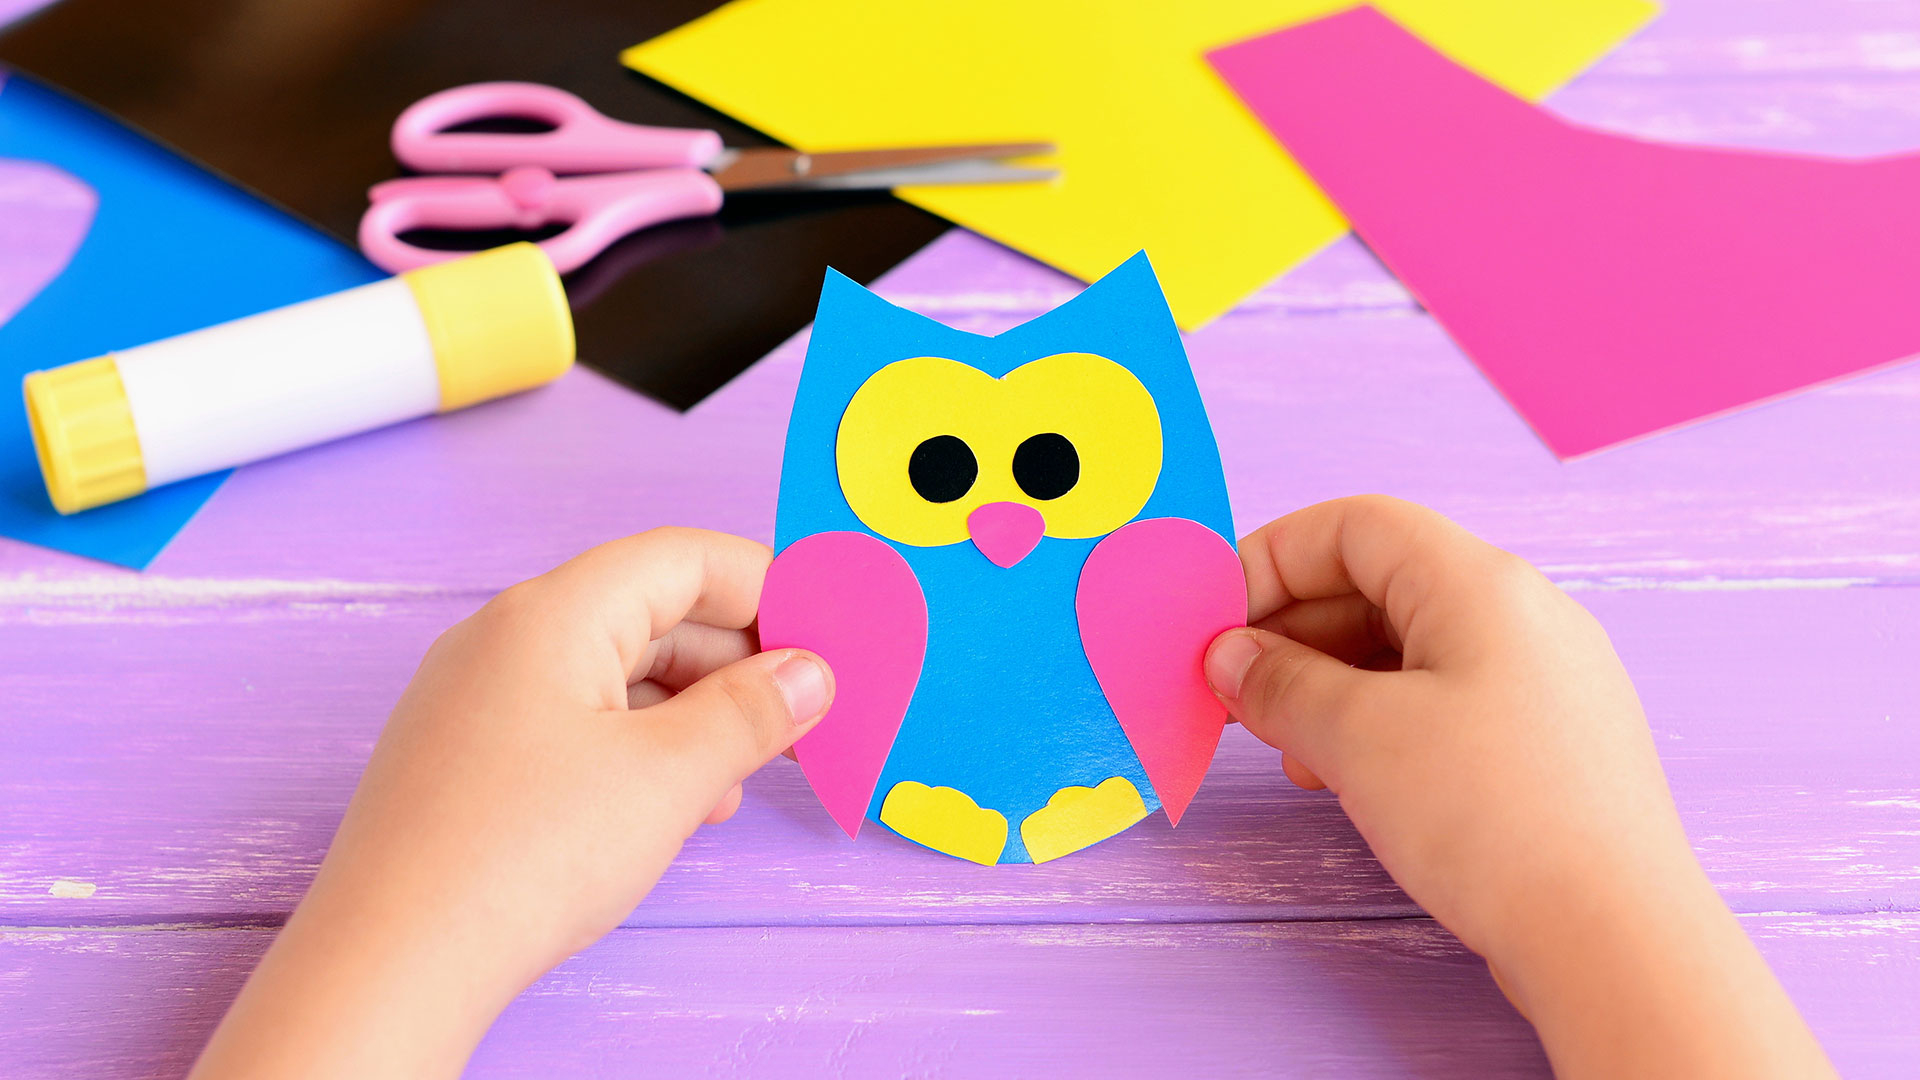 Simple and Cute Construction Paper Crafts for Kids 10 Easy Adorable Animal Crafts Kids Can Make Sheknows